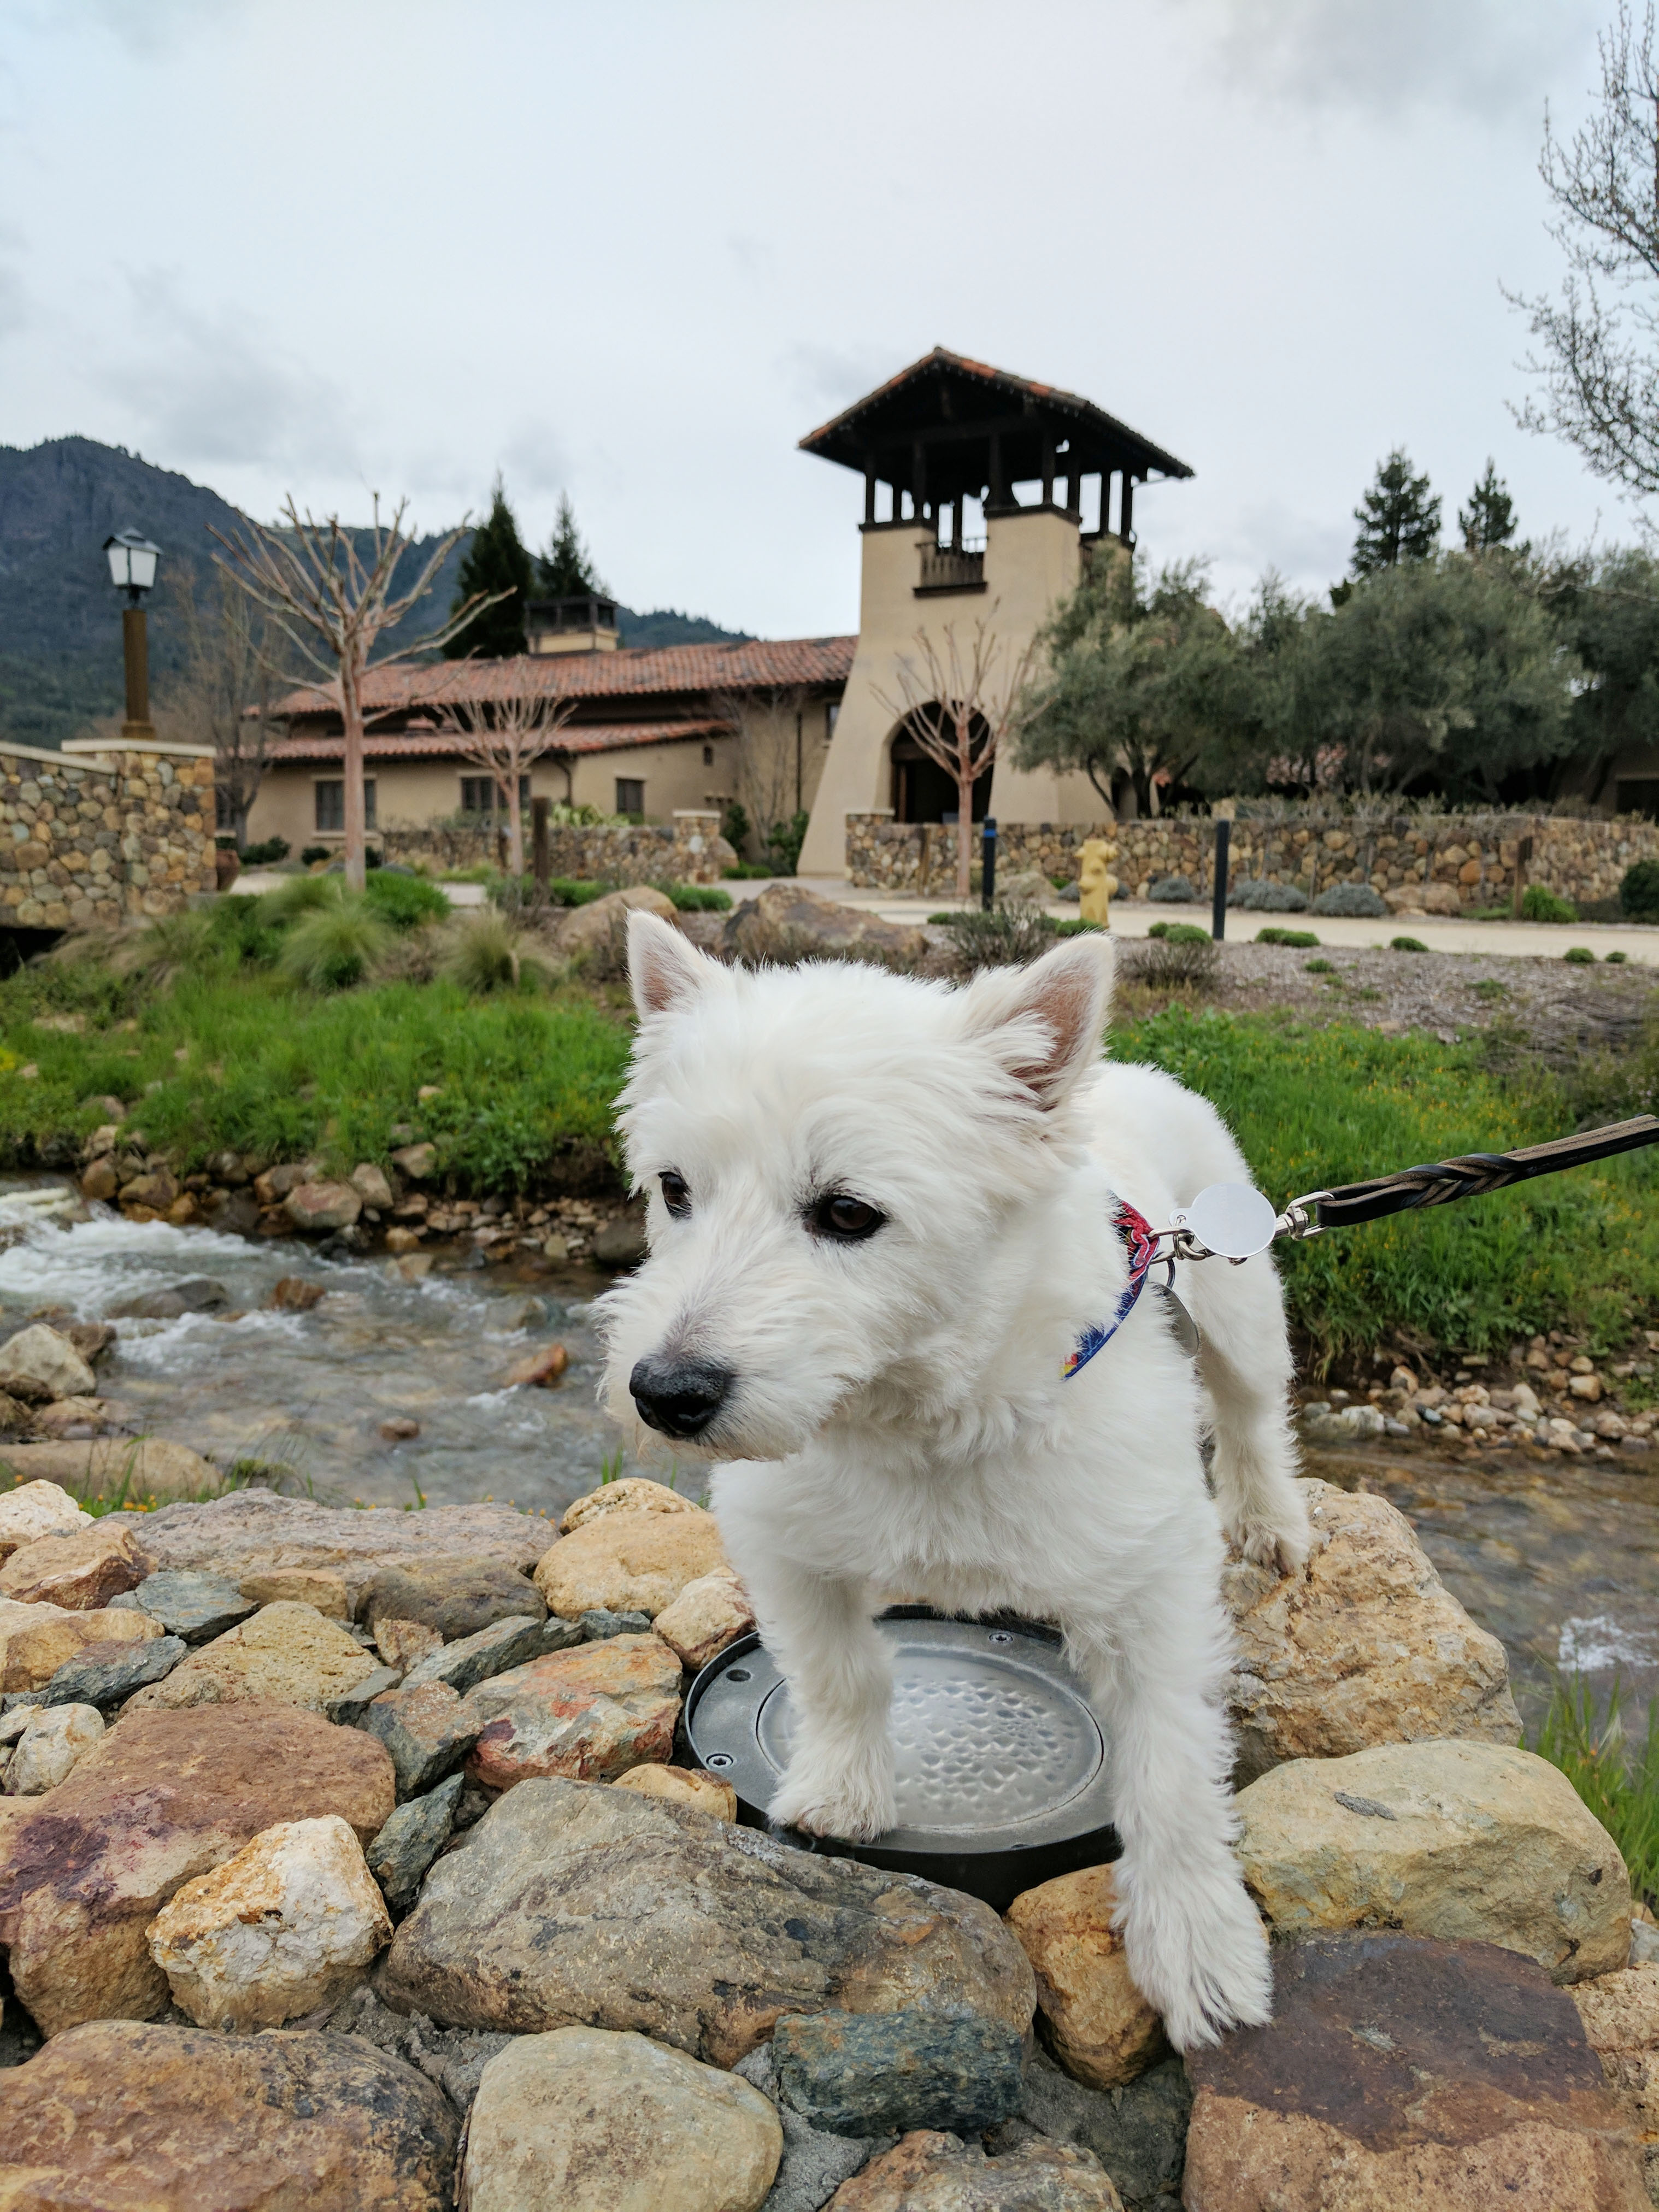 Ernie at St. Francis Winery. Photo Credit: Kimberly Paternoster